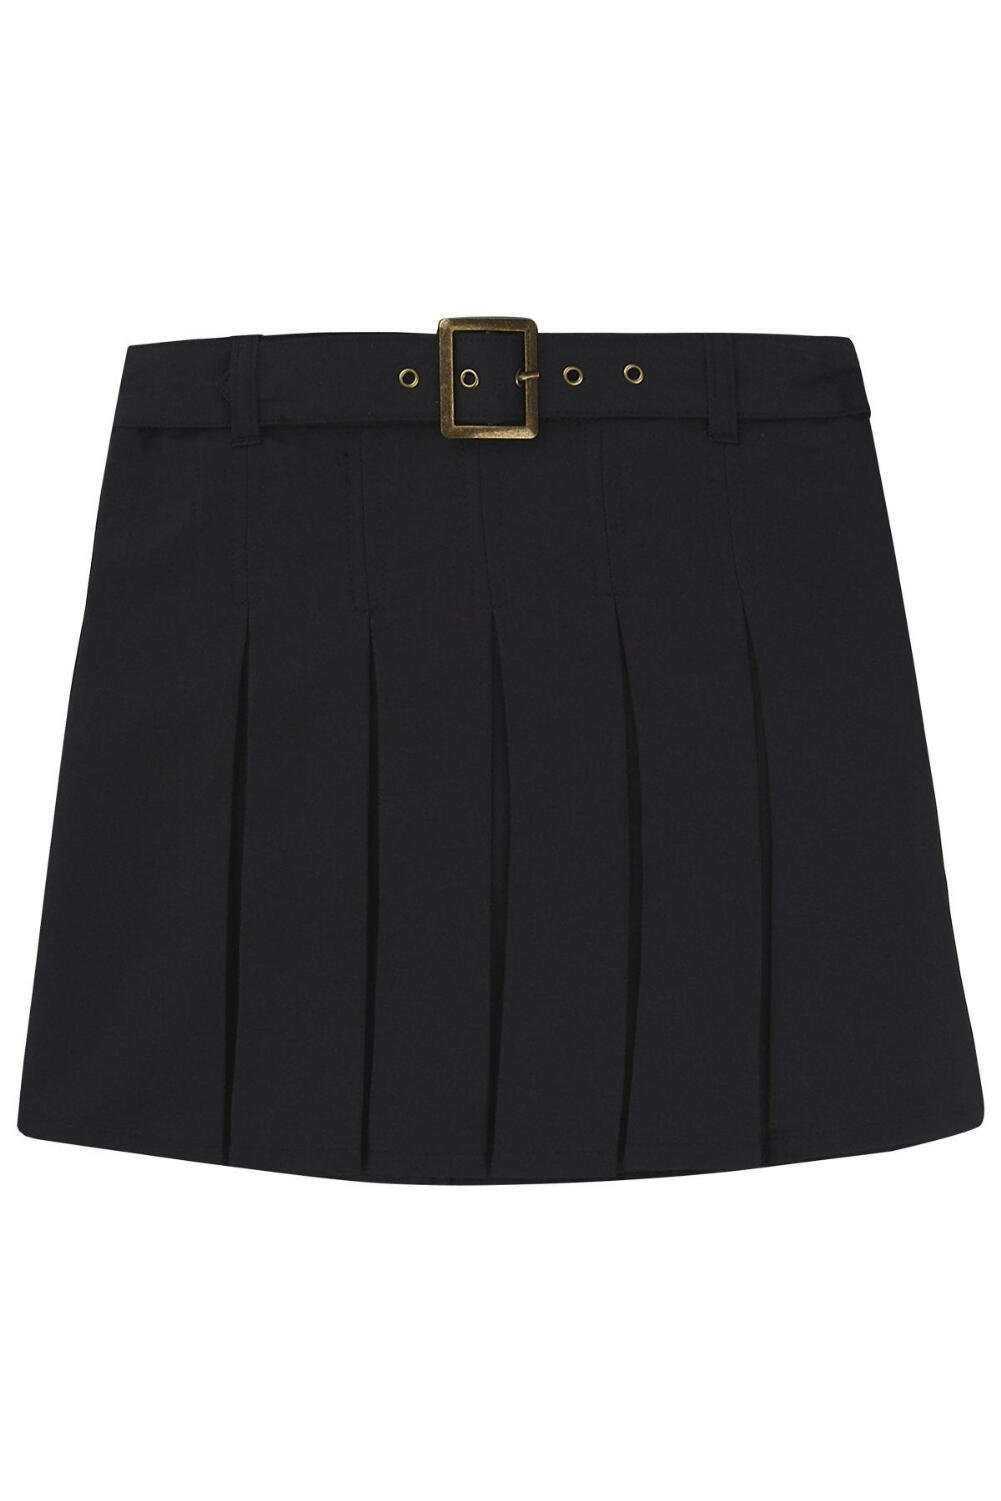 French Toast Big Girls' Belted Pleat Scooter, Black, 20